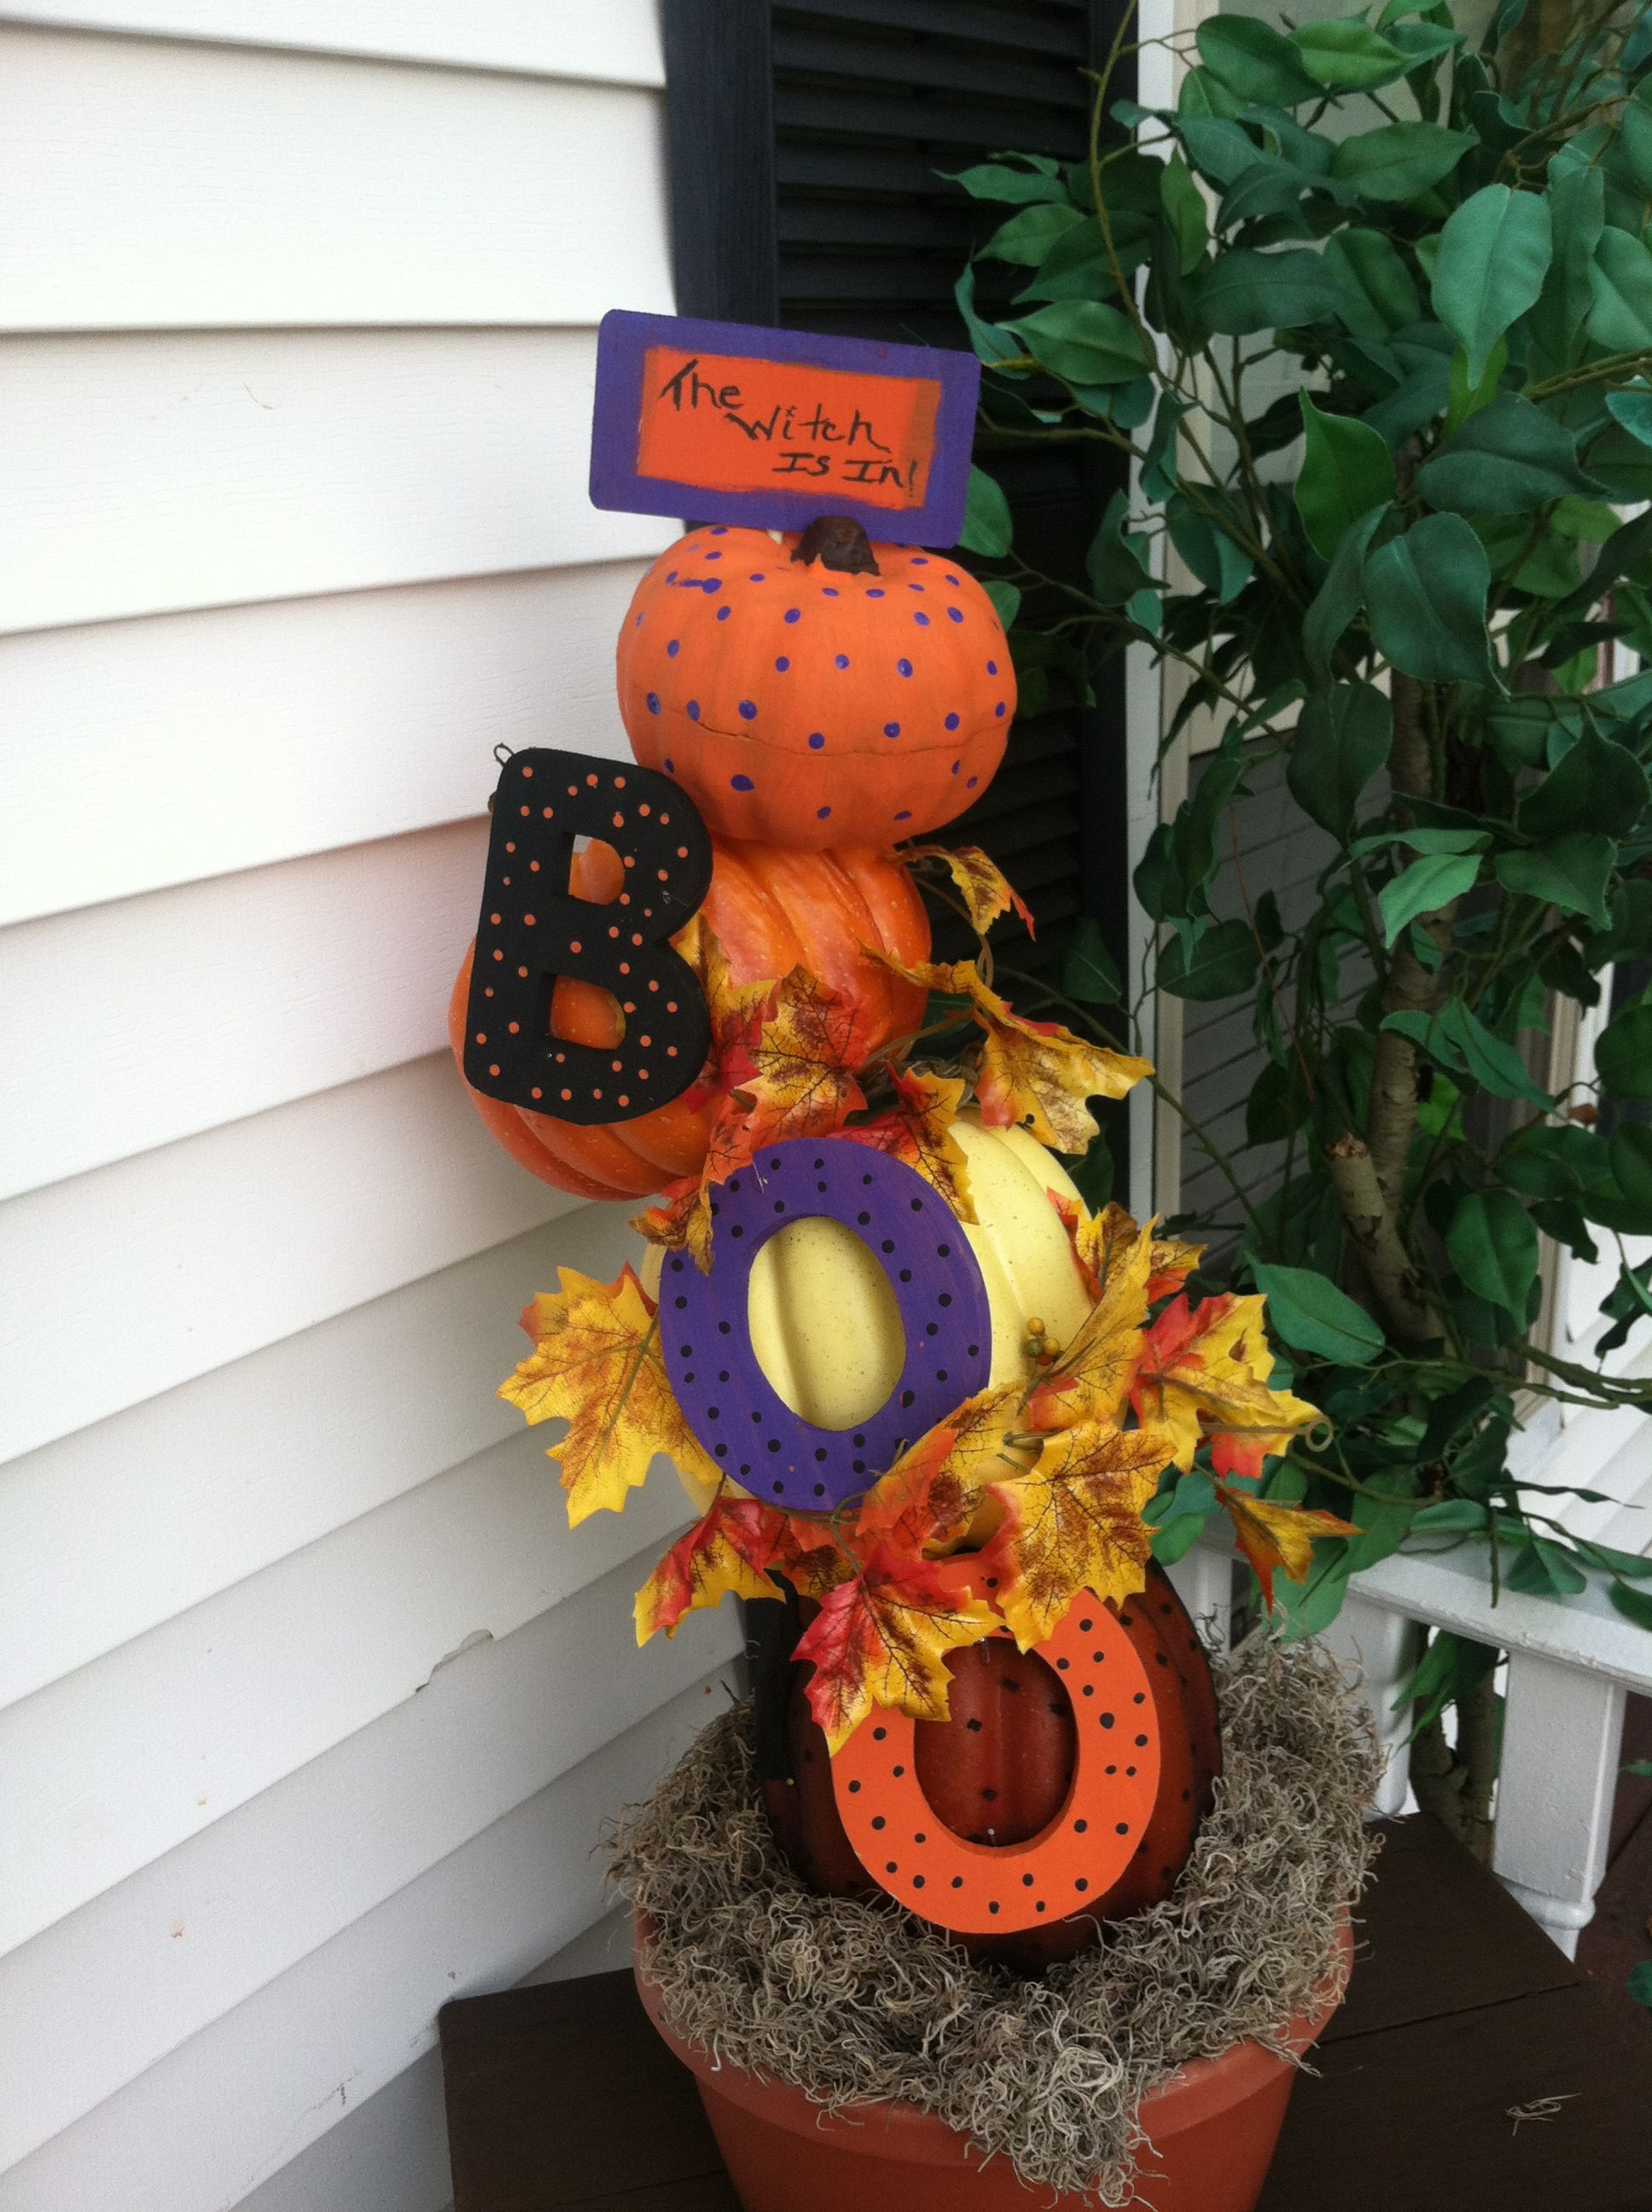 Halloween decoration I made for my porch. Turned out pretty cute I think